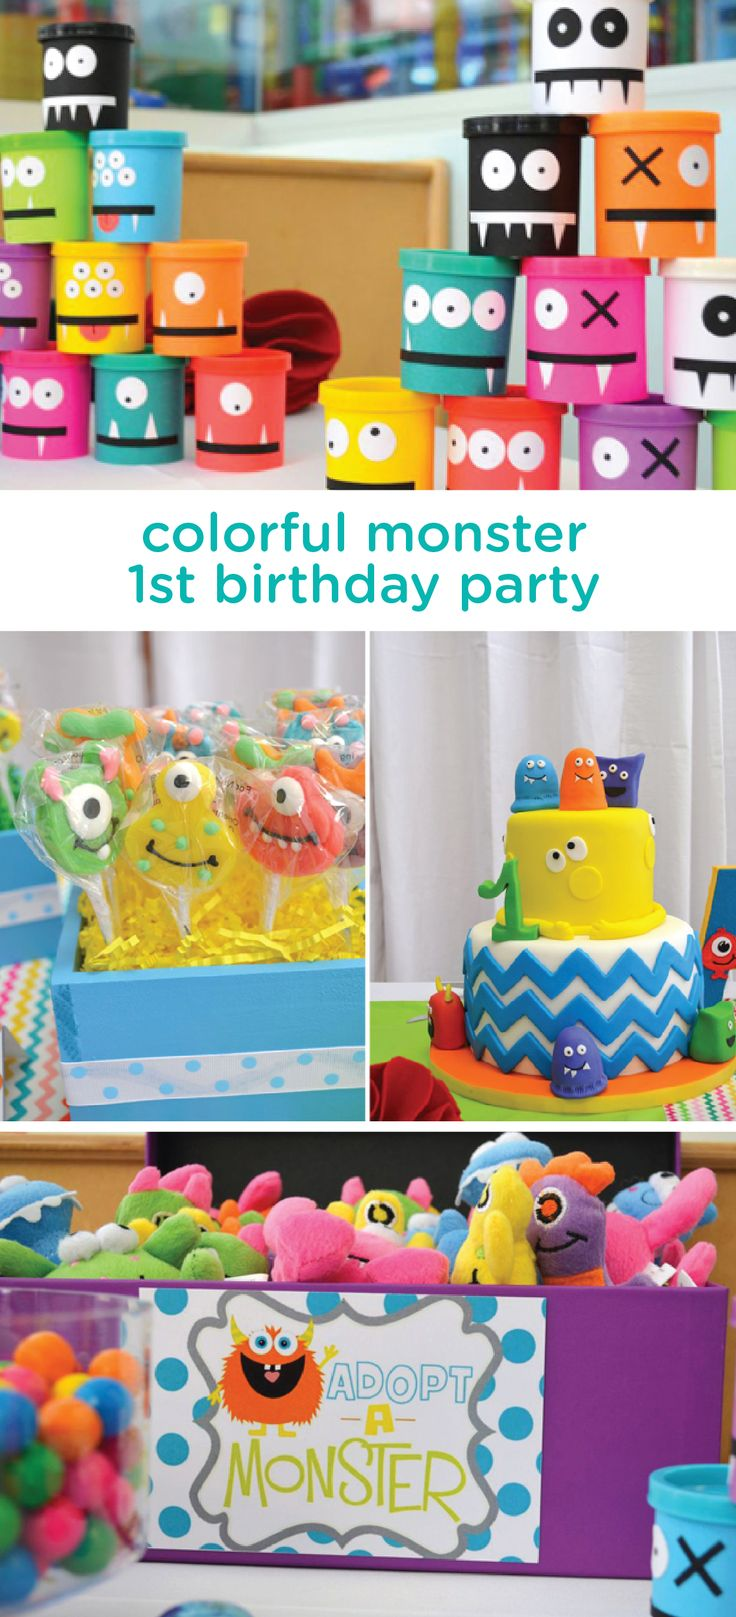 Celebrate your little one with a party that suits his wild personality. This colorful monster themed 1st birthday party is full of creative decorations, delicious treats and kid-friendly activities you can use as inspiration for this amazing celebration.